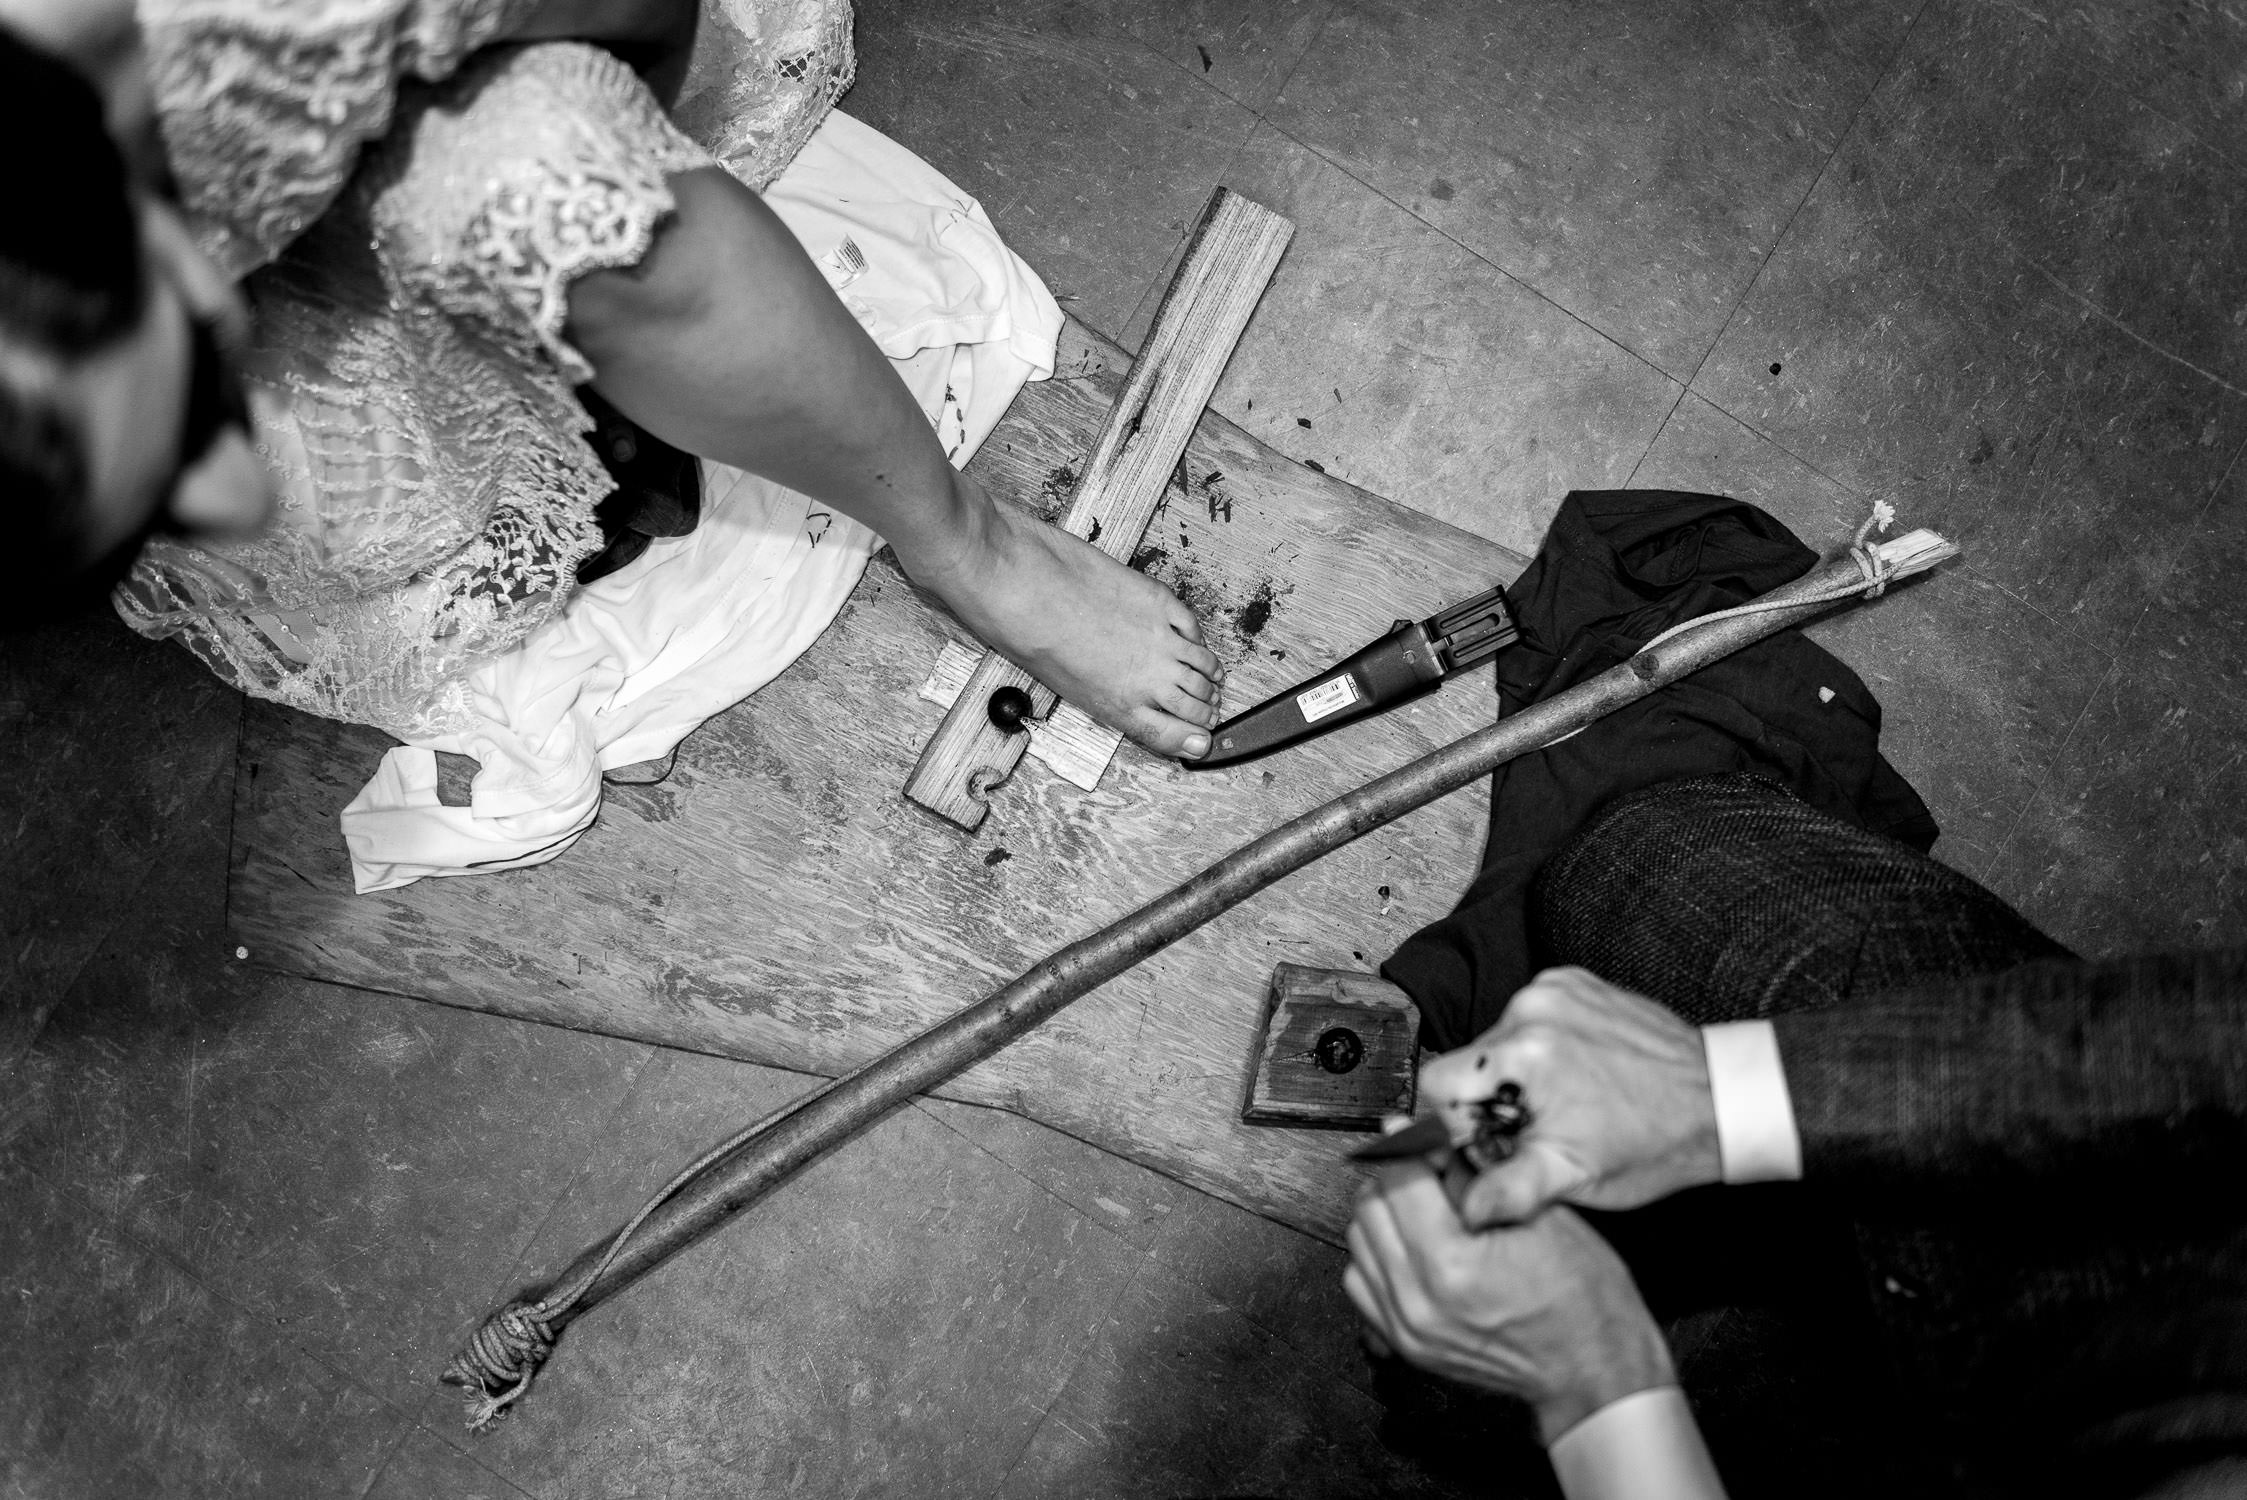 Birds eye view of bride and groom building fire by rubbing sticks together